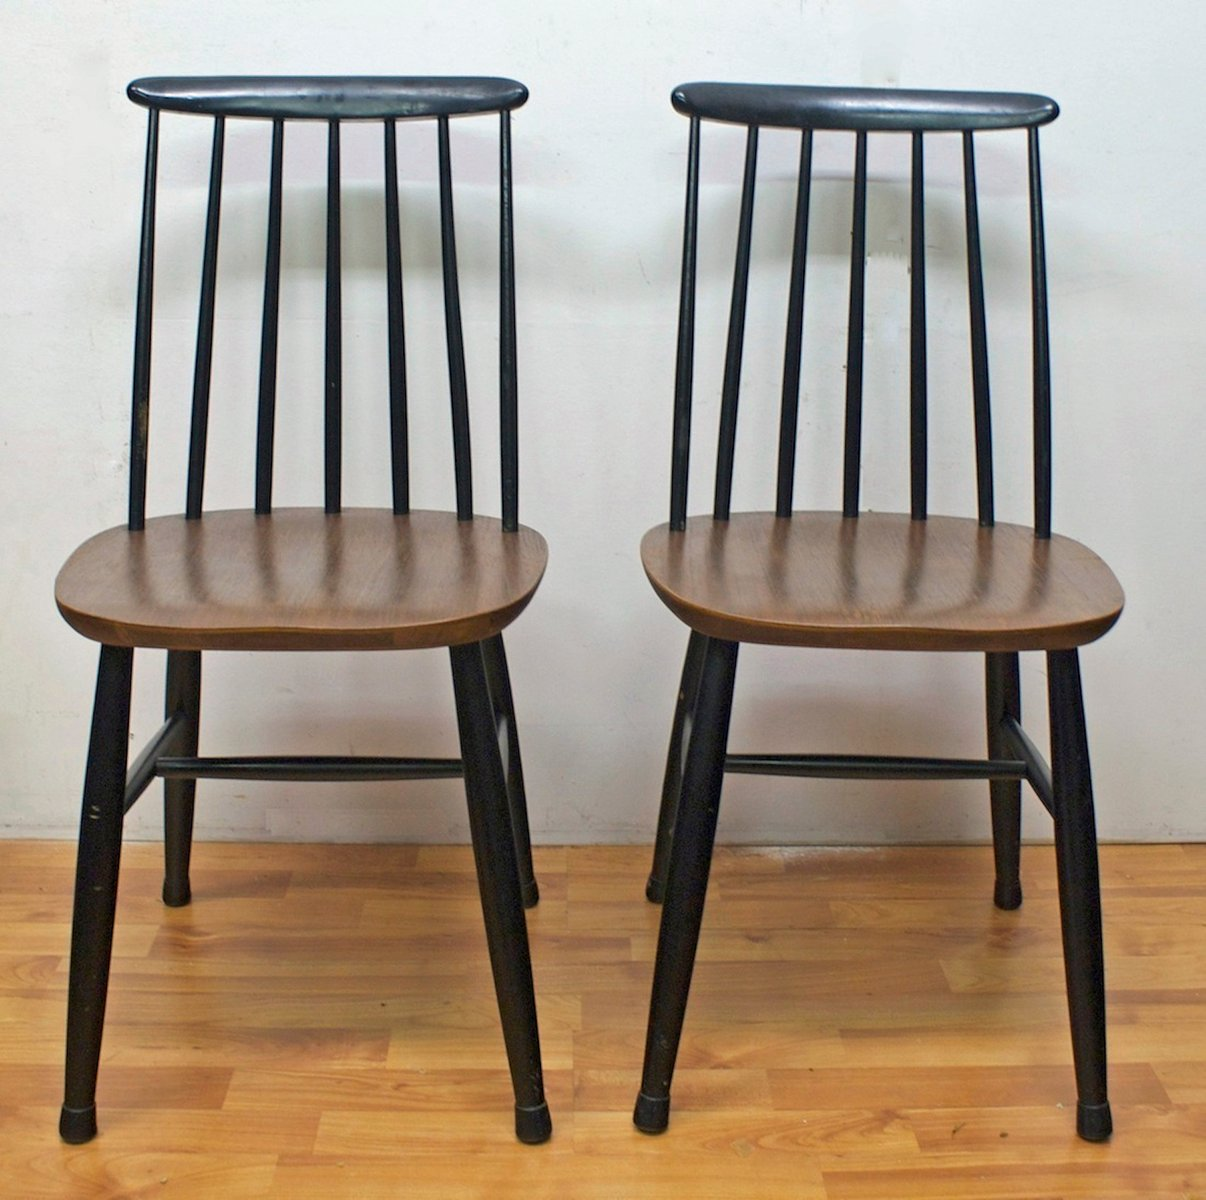 Dining Chairs 1960s Set of 2 for sale at Pamono